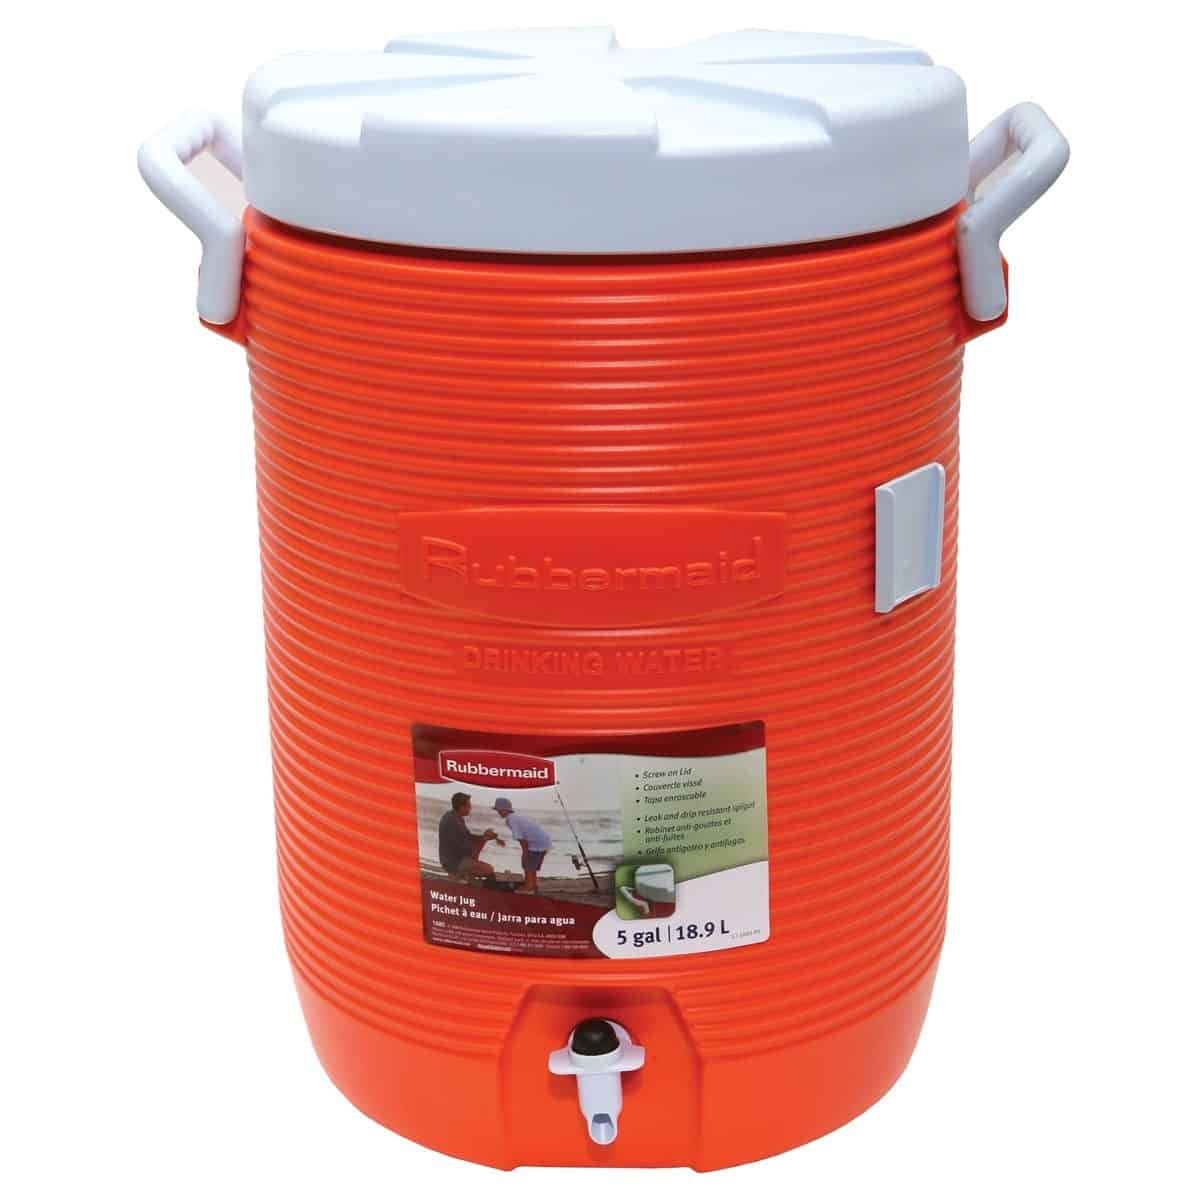 Water Cooler - 5 gallon